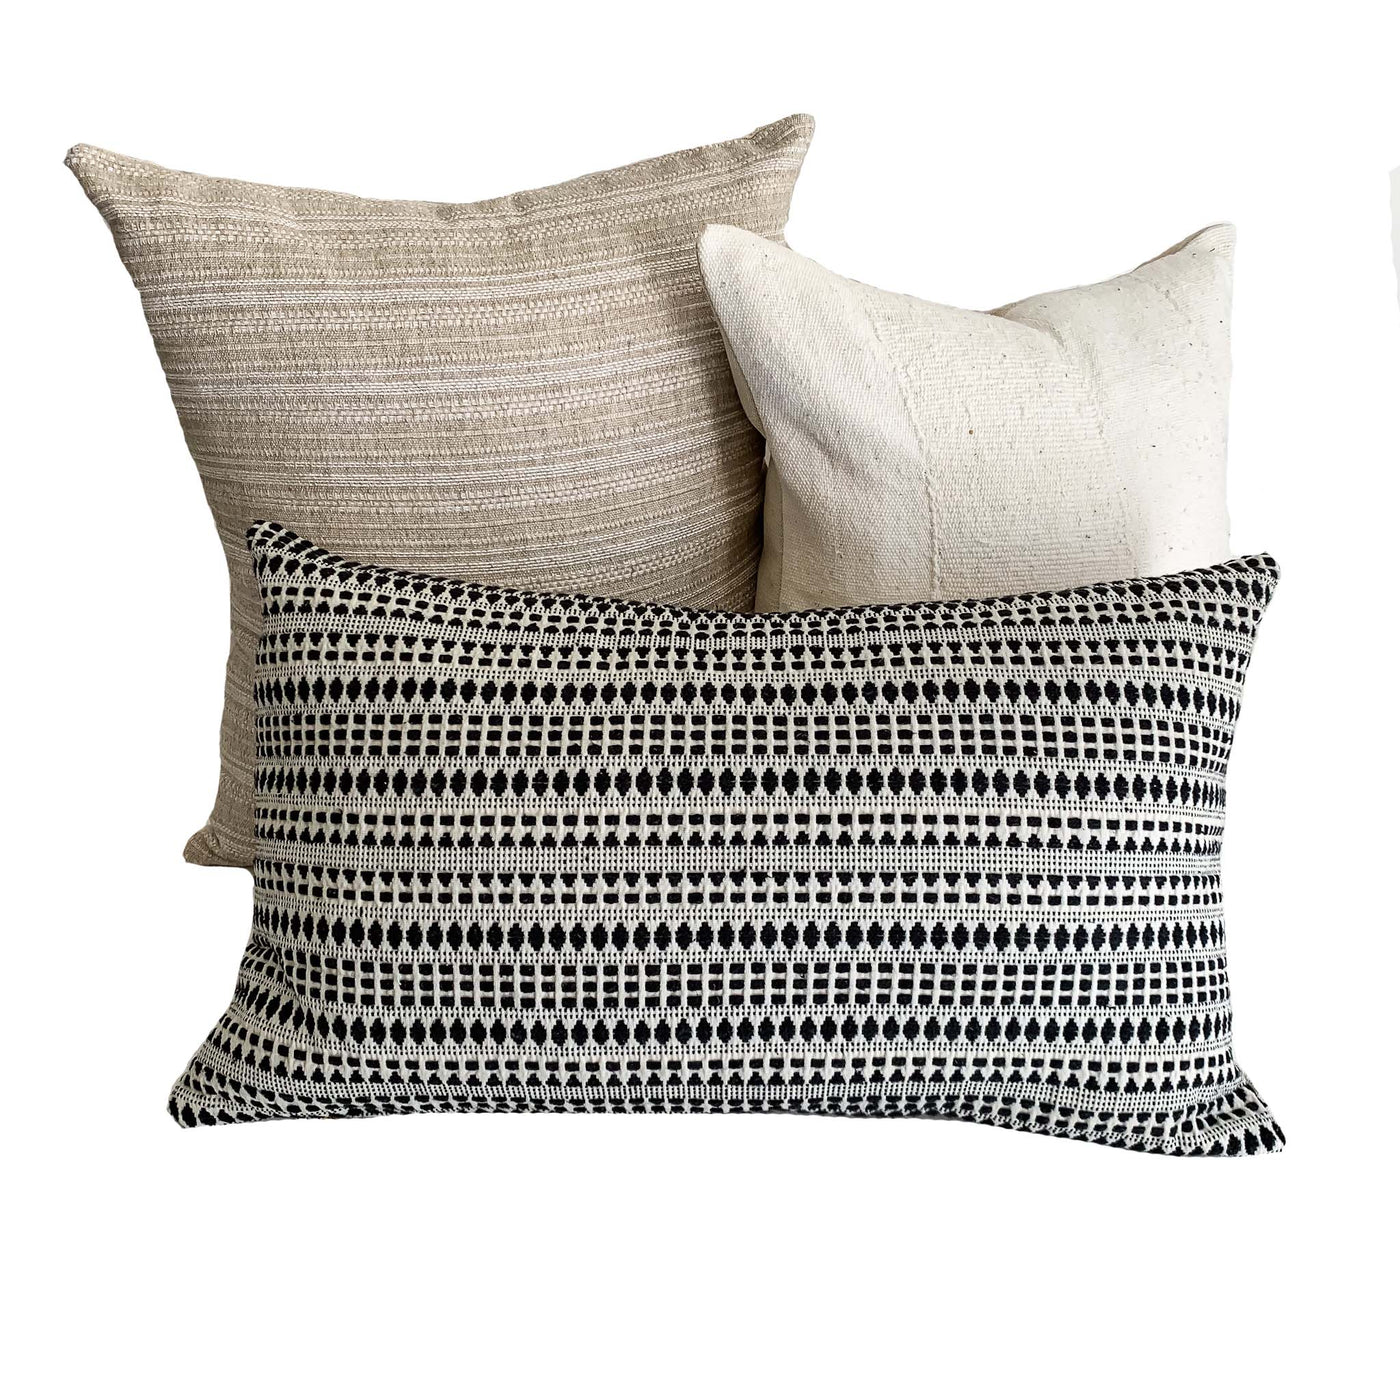 Studio Pillows | Pillow Combination #5 - Studio Pillows